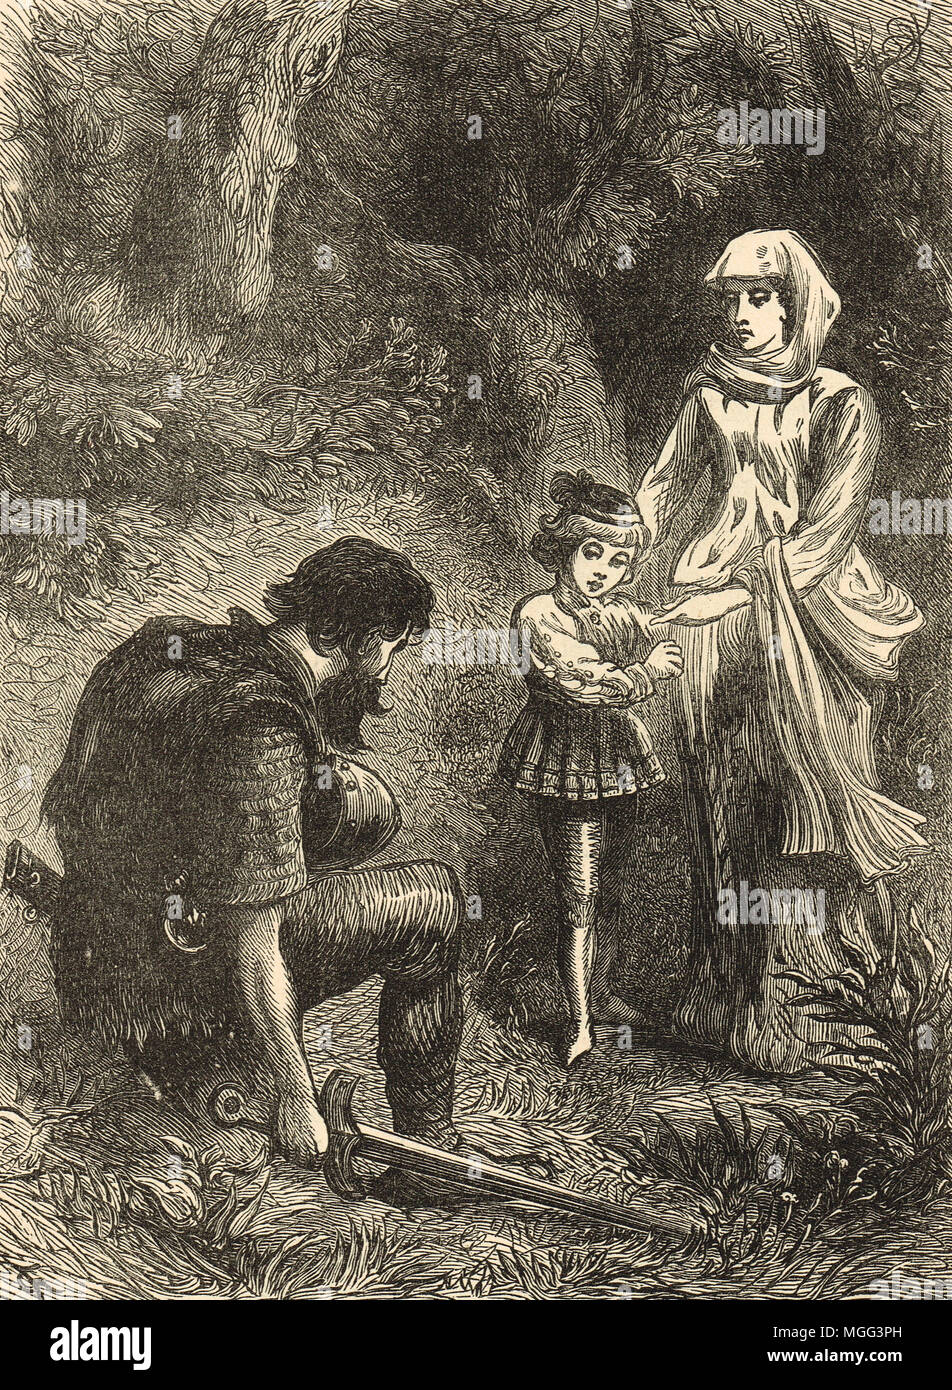 Queen Margaret of Anjou and the robber of Hexham - Stock Image